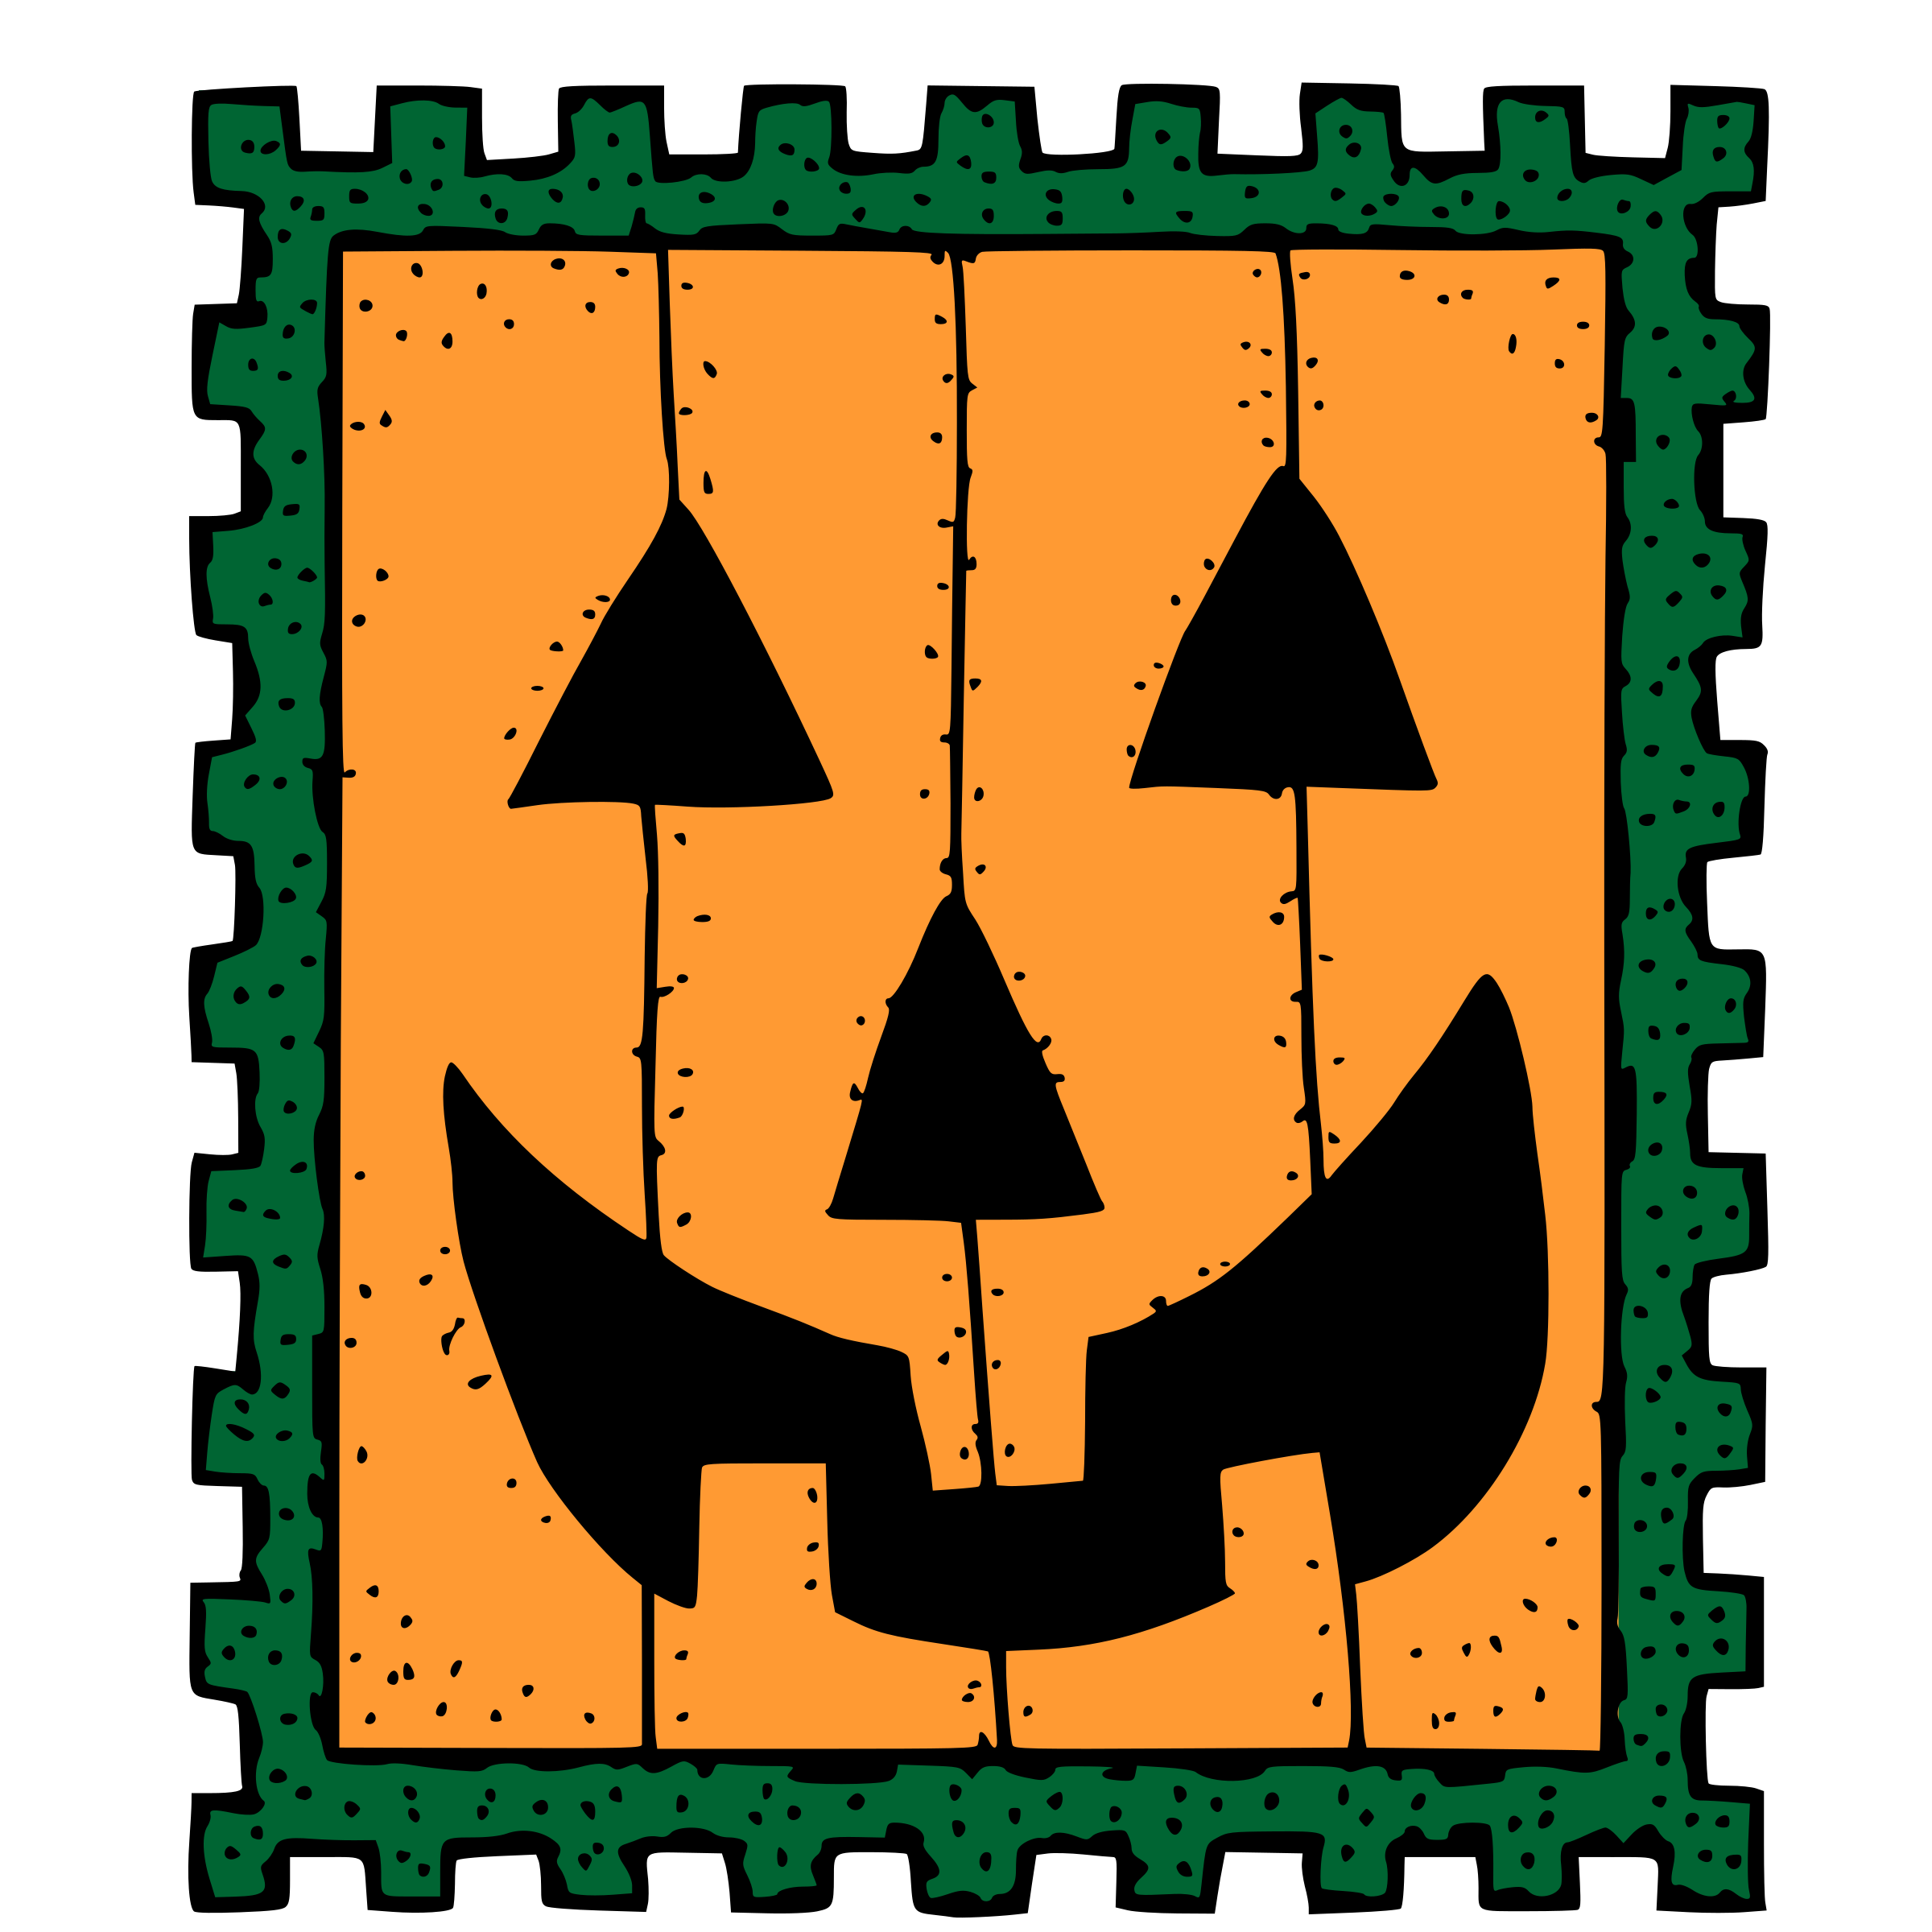 Stamp clipart official. Halloween big image png